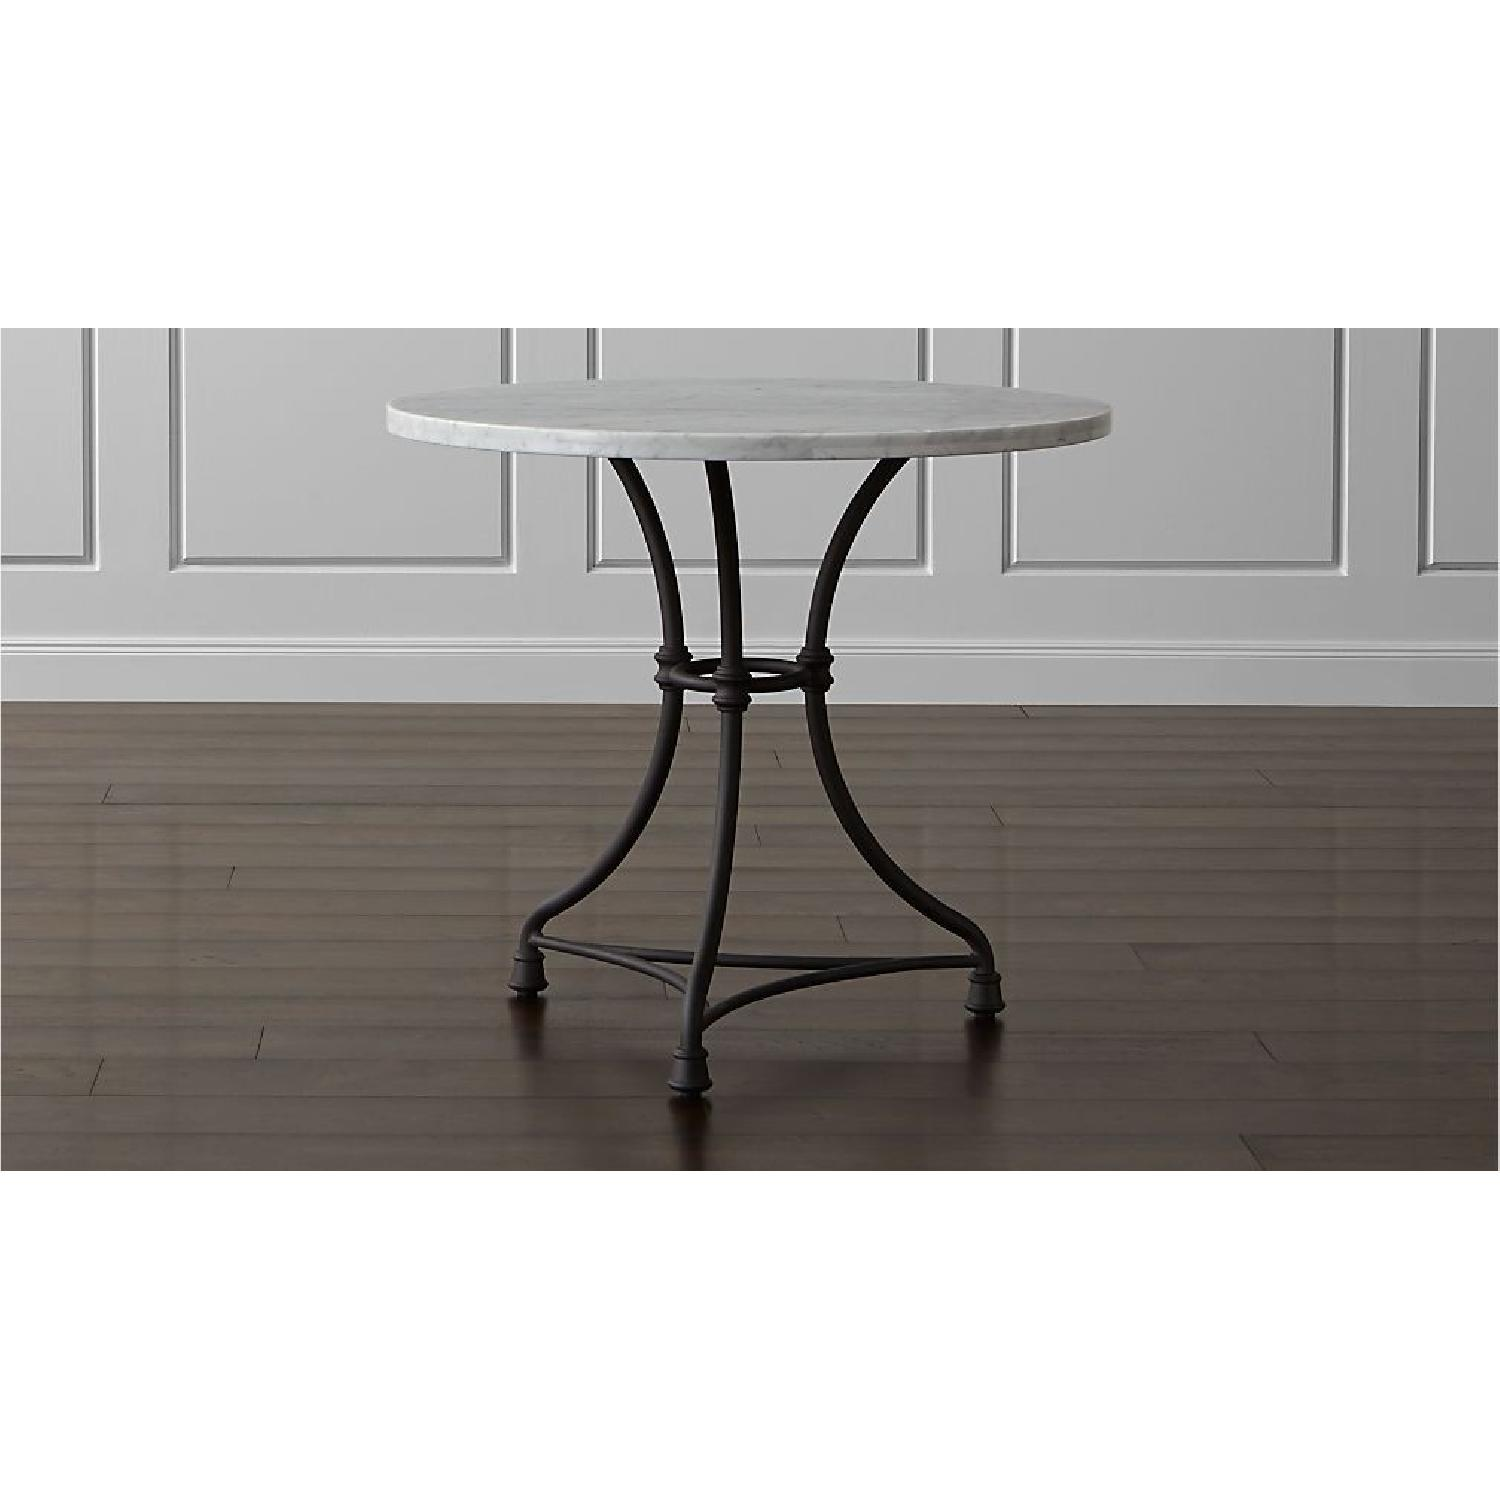 Crate & Barrel French Kitchen Round Bistro Table - image-5